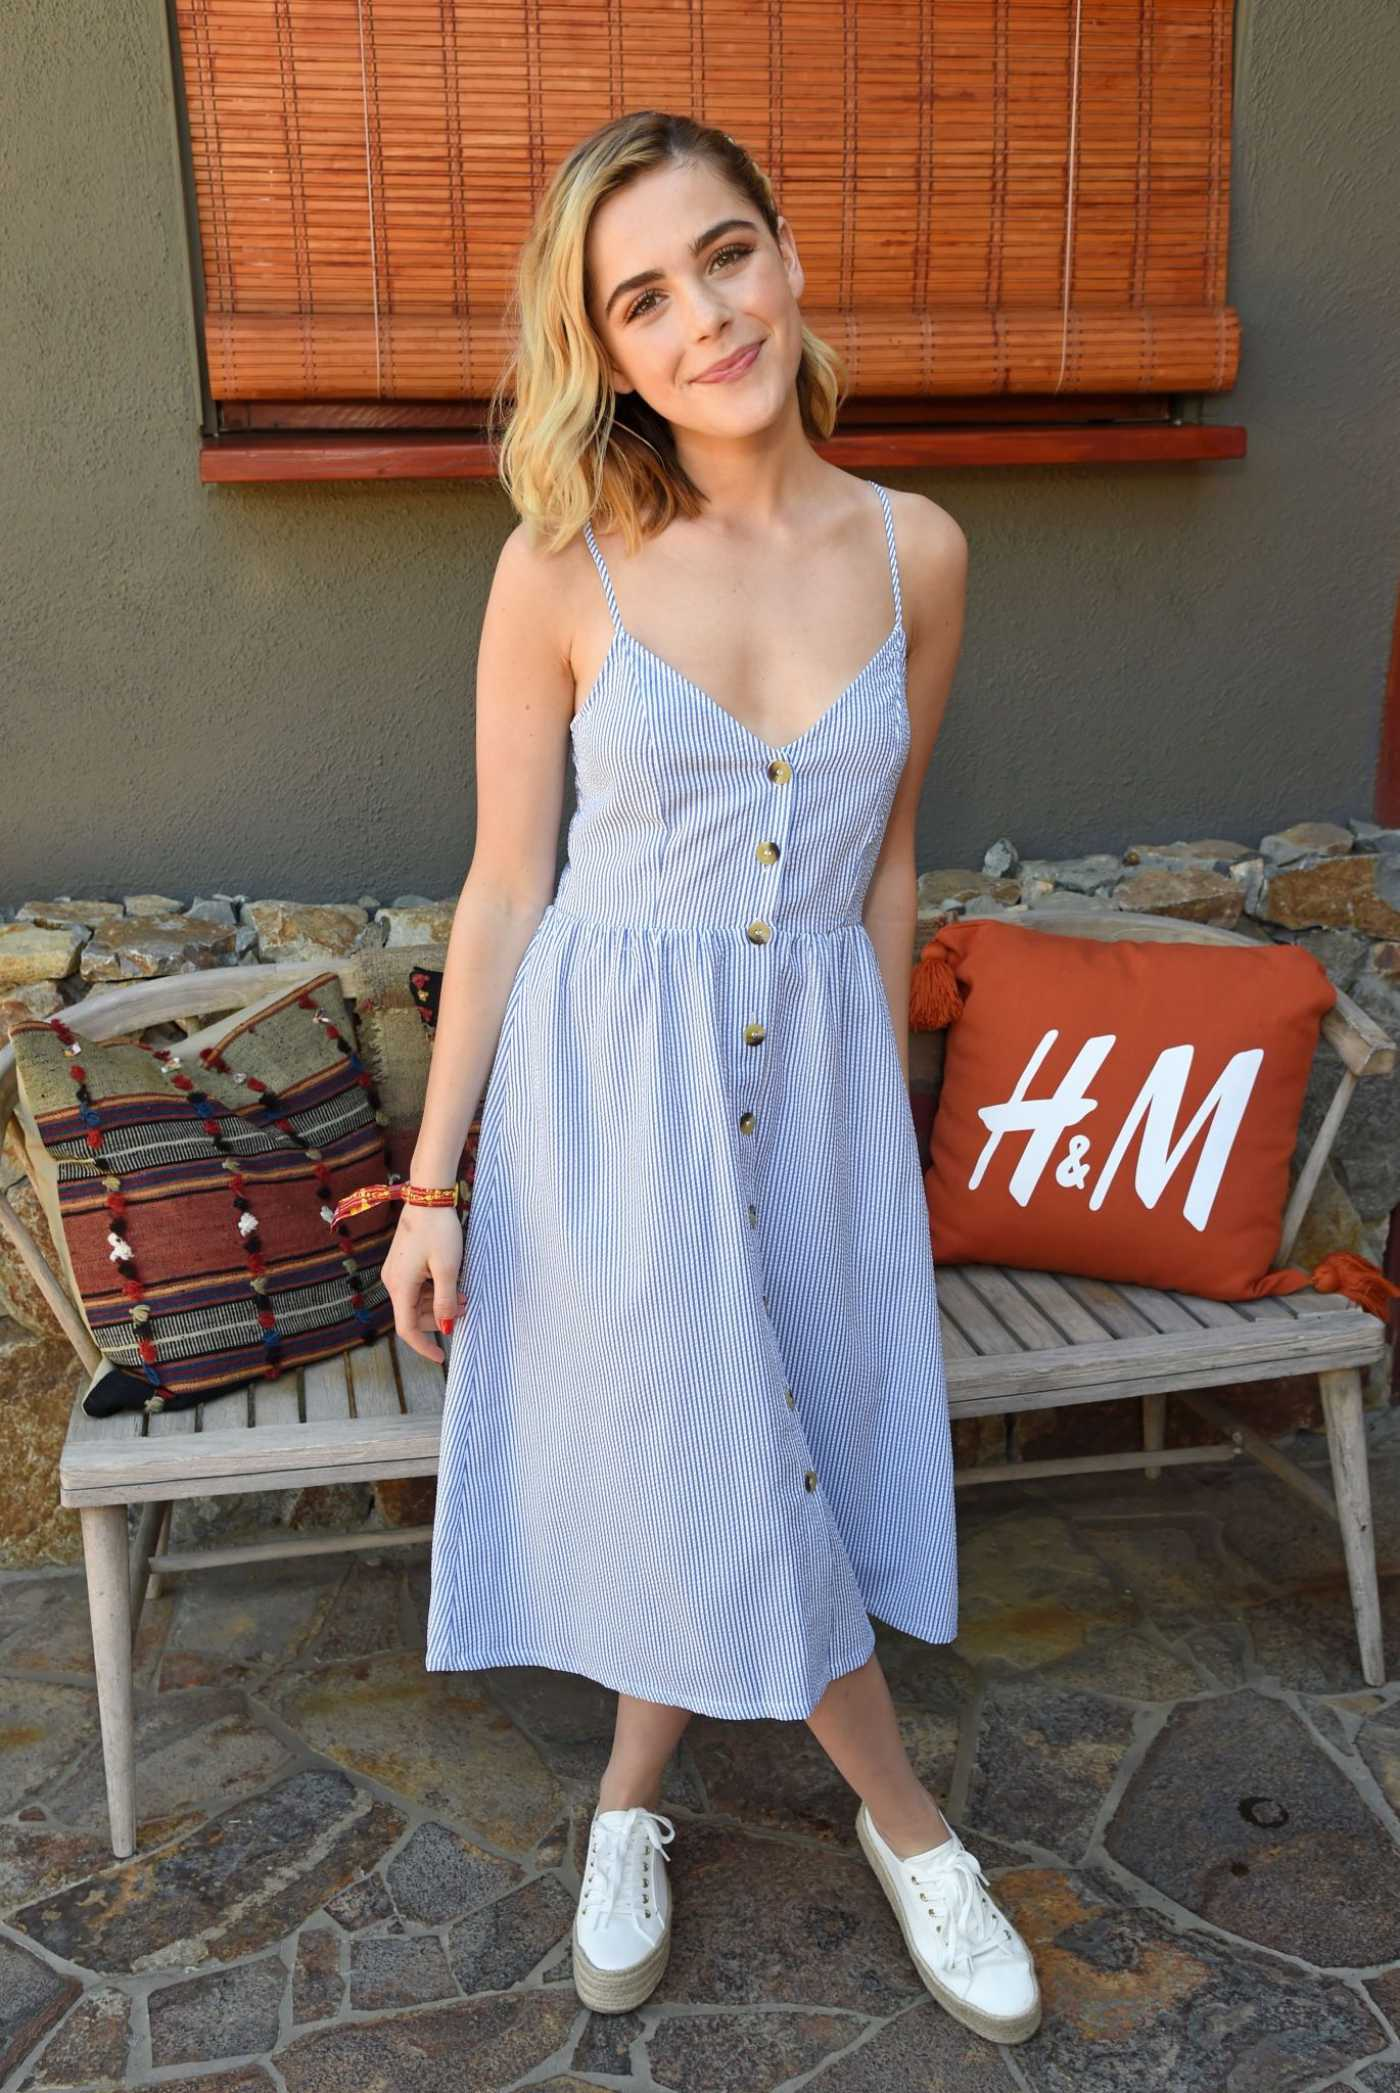 Kiernan Shipka Attends the Poolside with H&M in Palm Springs 04/13/2019